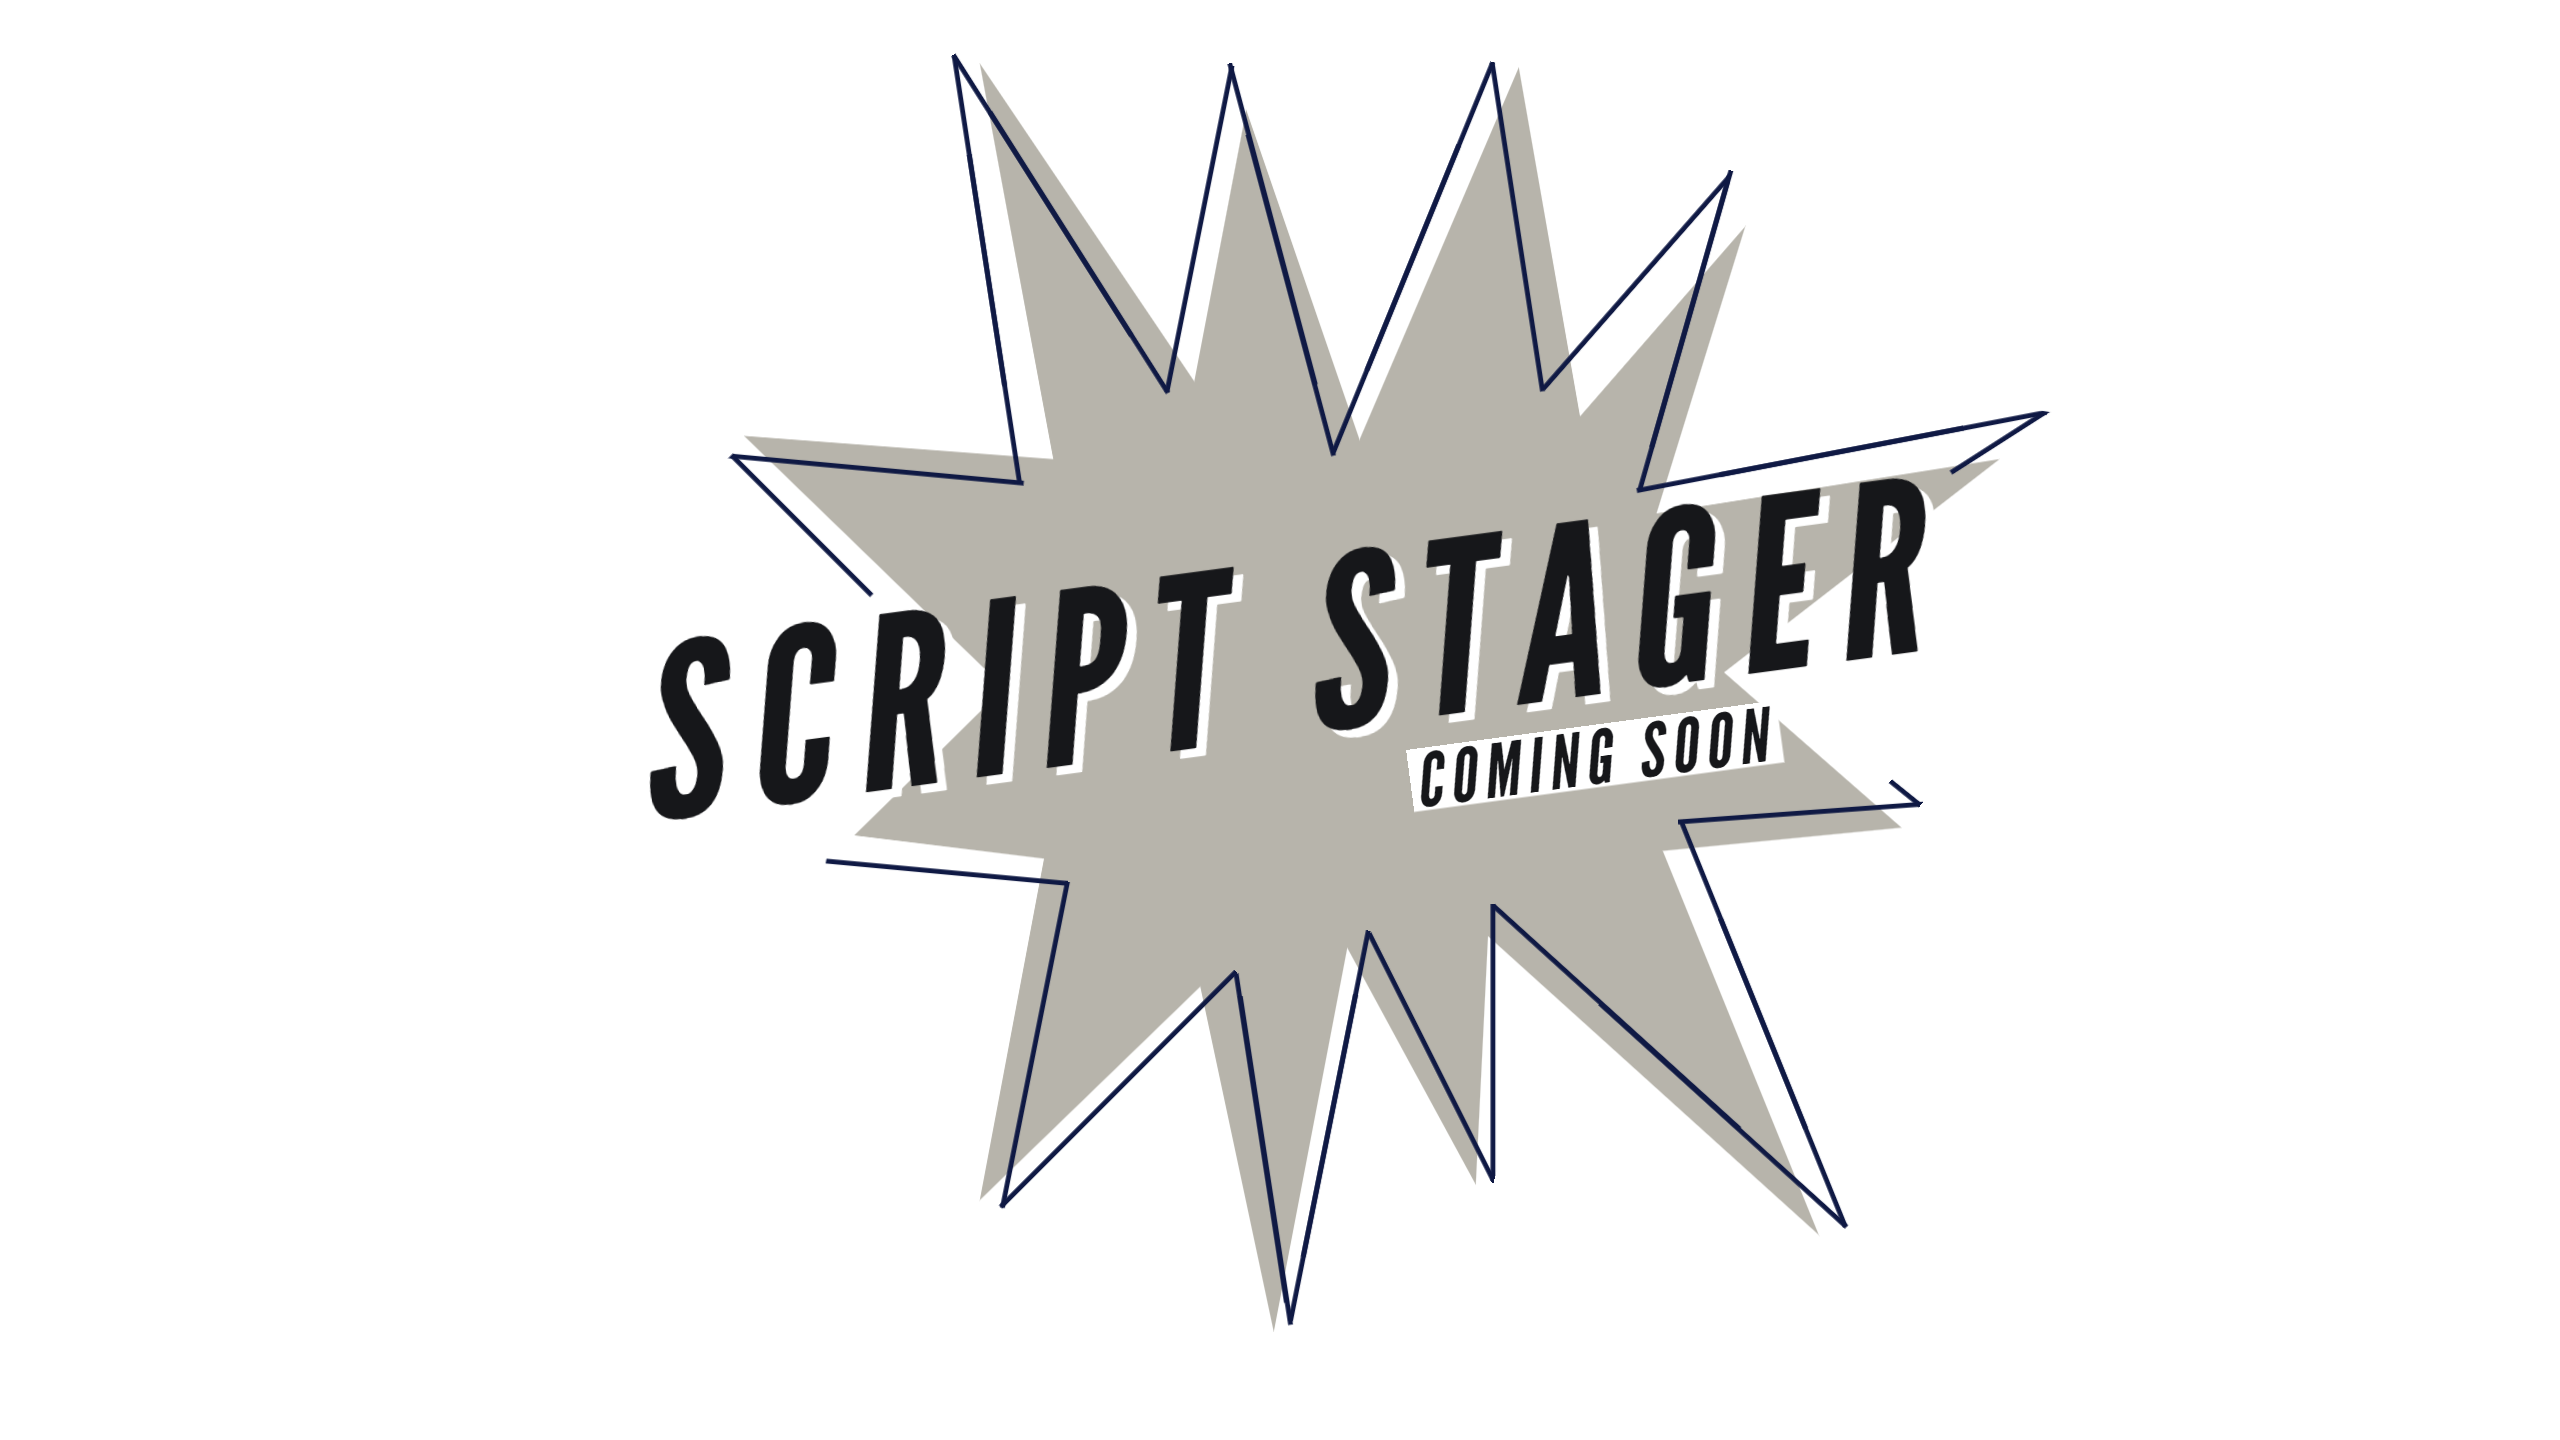 Script Stager